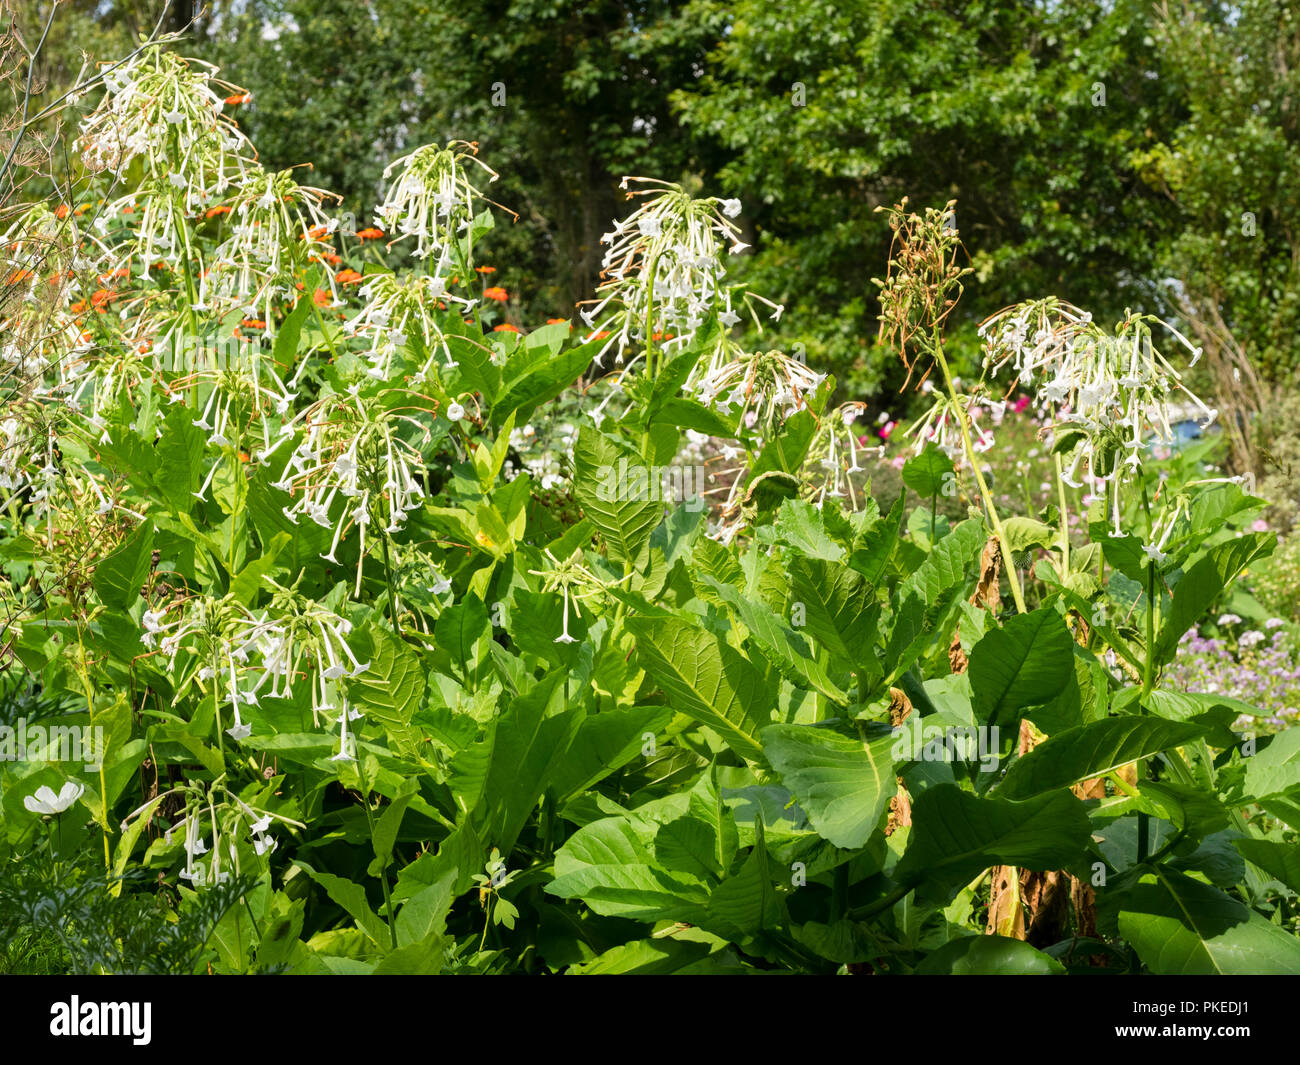 Scented, tubular white flowers and large leaves of the tender biennial tobacco plant, Nicotiana sylvestris - Stock Image